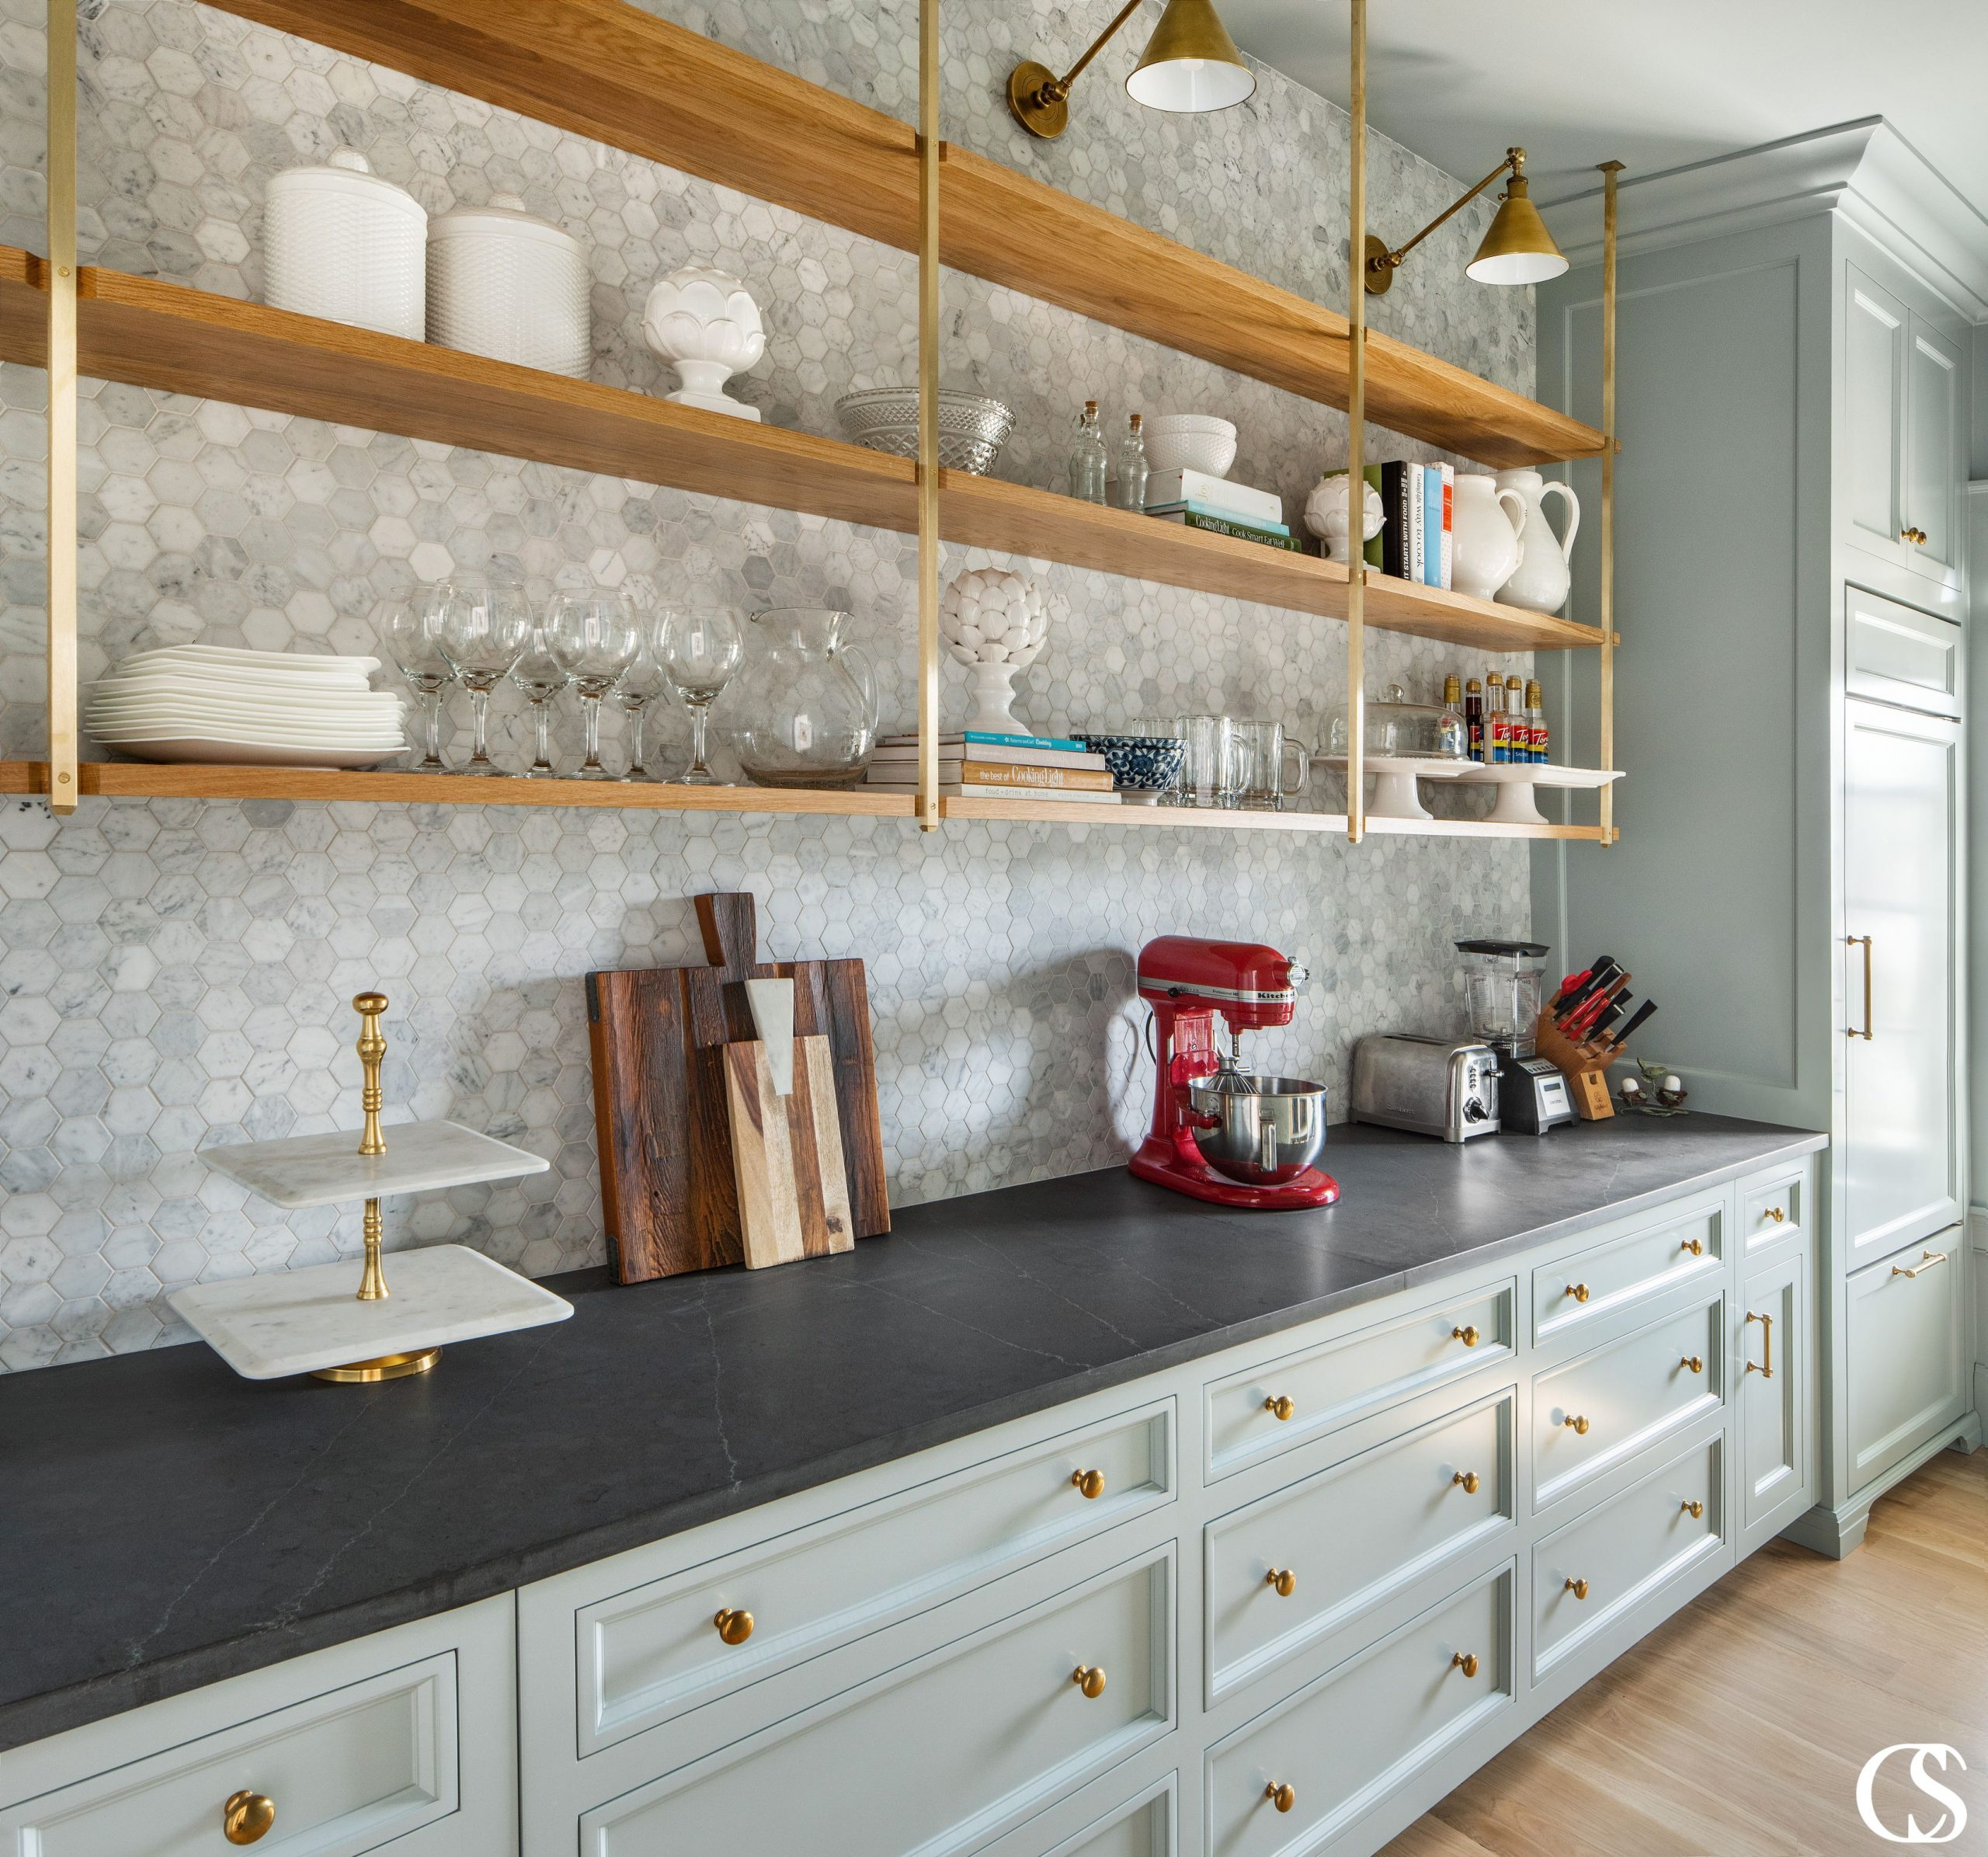 It doesn't hurt to go through your current kitchen items and make a list of the large item sizes and any personal kitchen items that are unique to your lifestyle (tea storage, coffee makers, large knife sets, sport bottles, china, tupperware, etc.) so that your custom cabinets in the kitchen can hold it all.